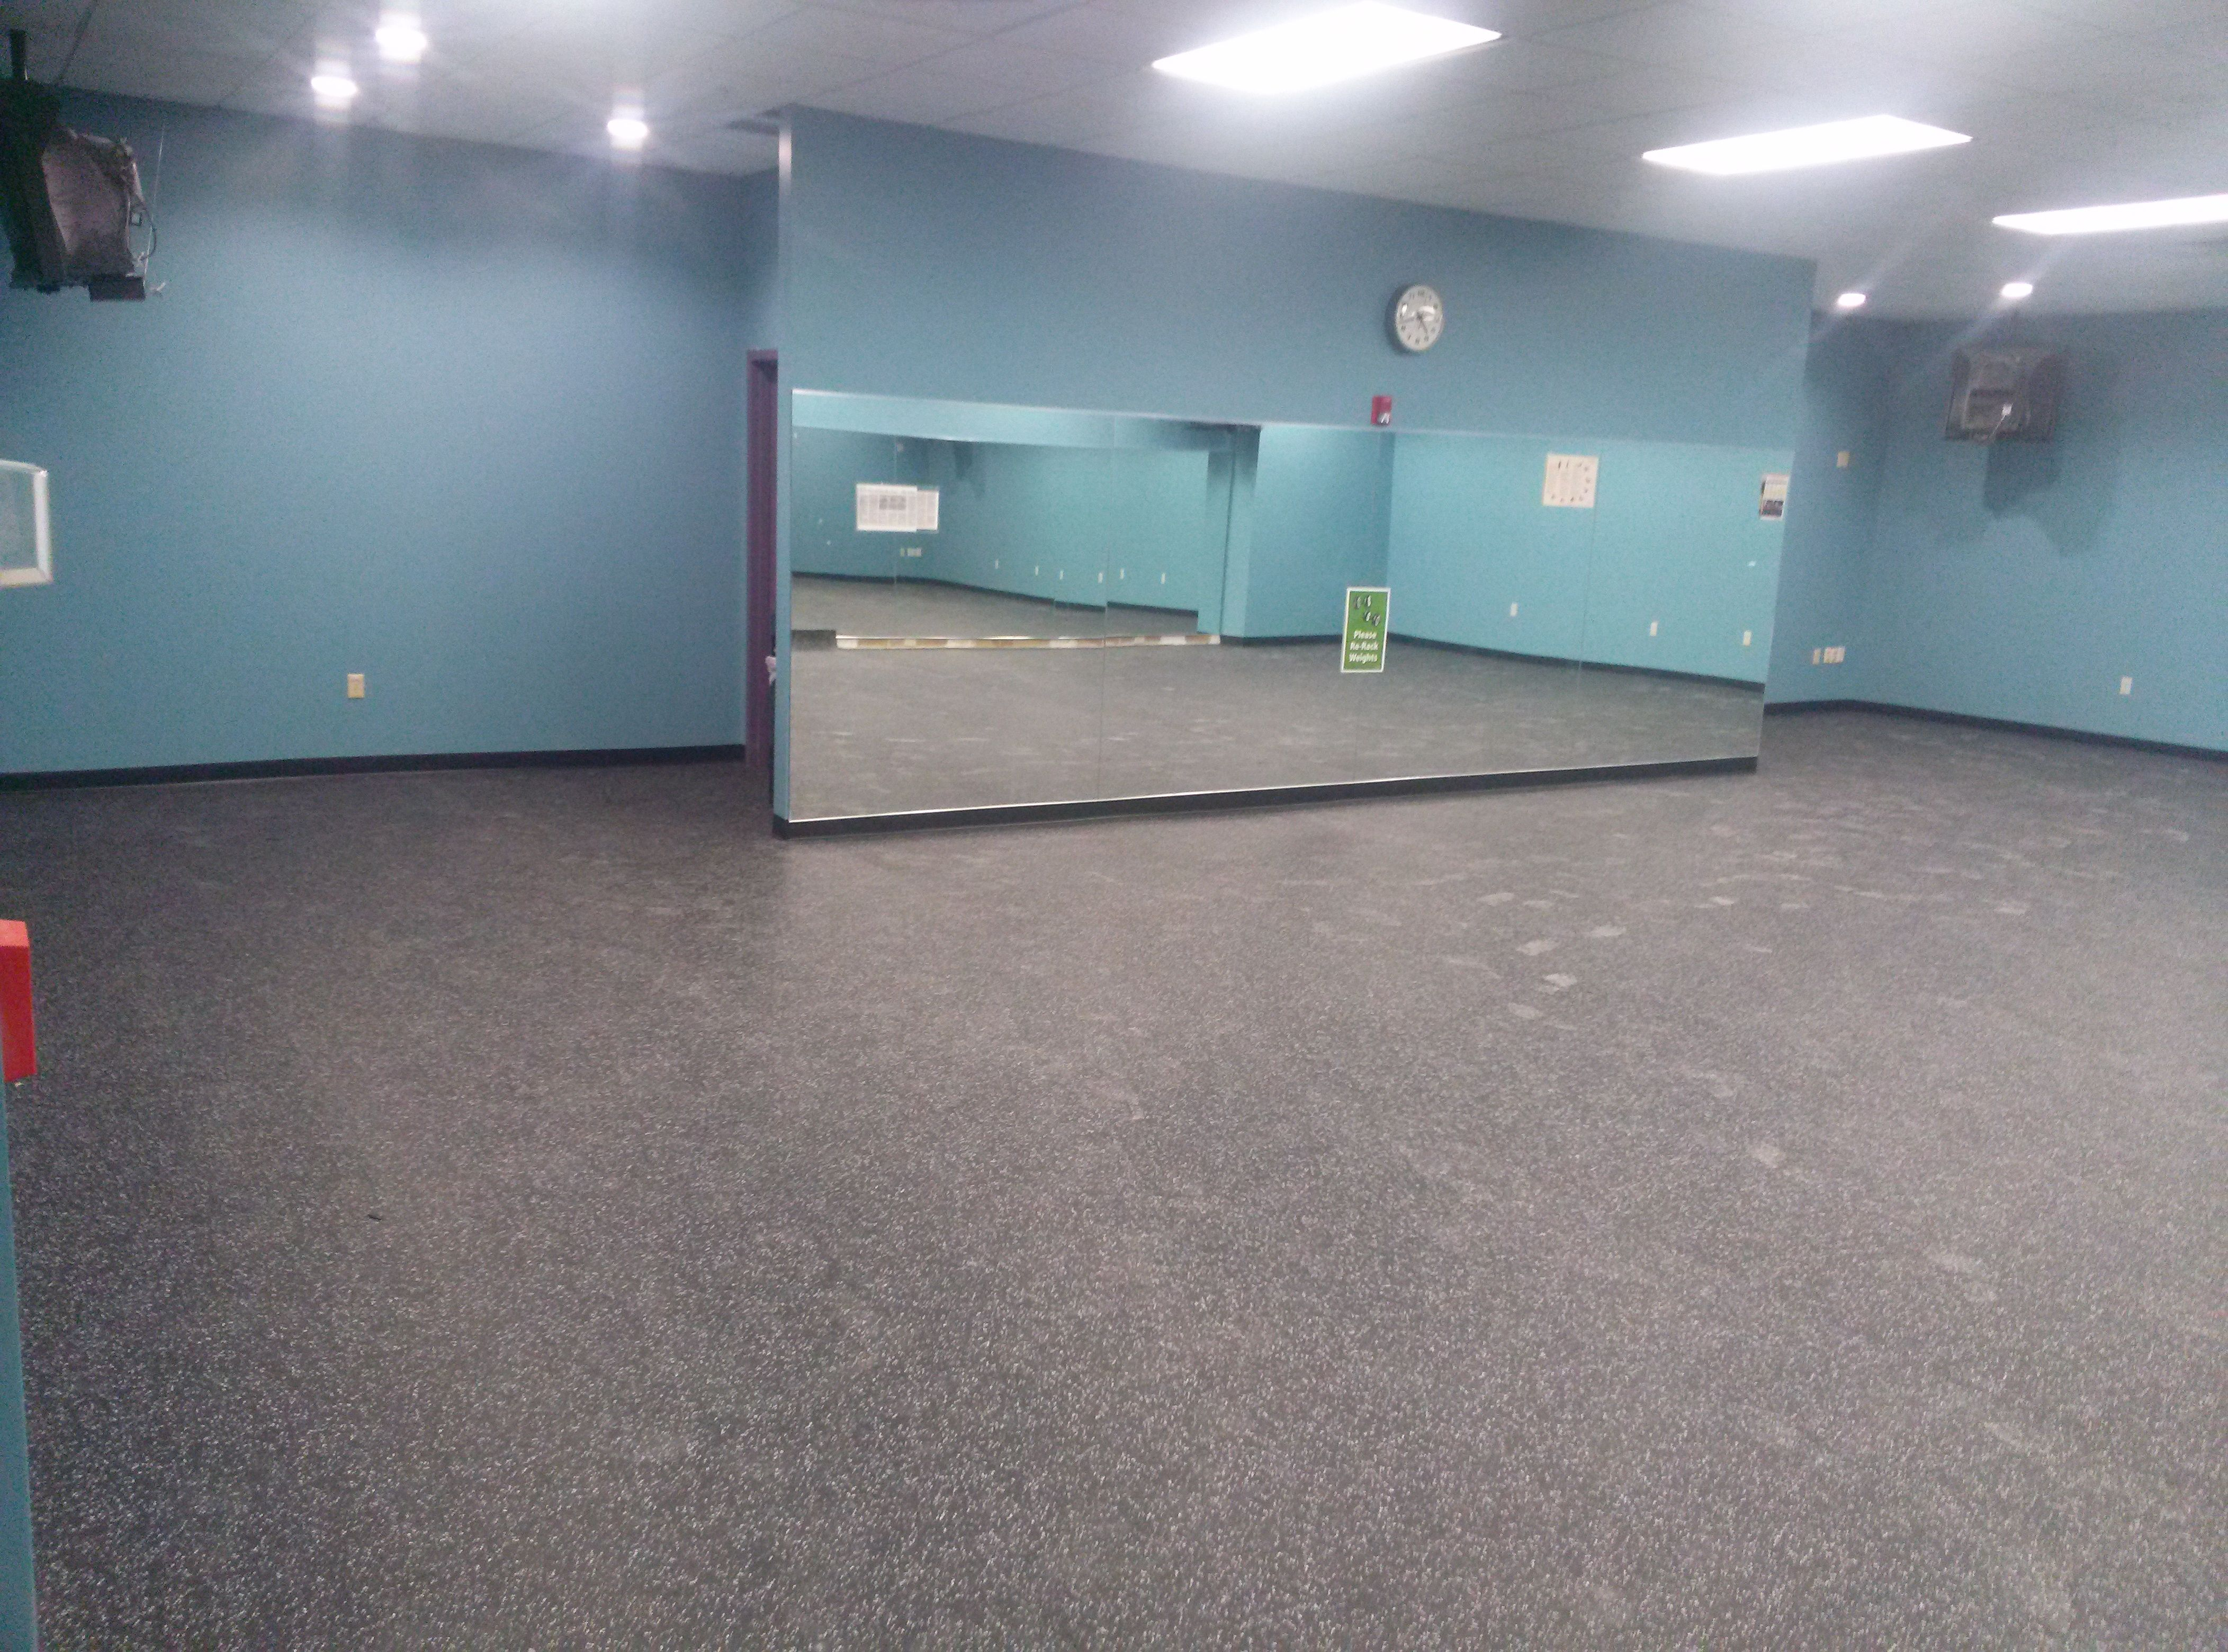 BIG Y CORPORATE COMPLETED